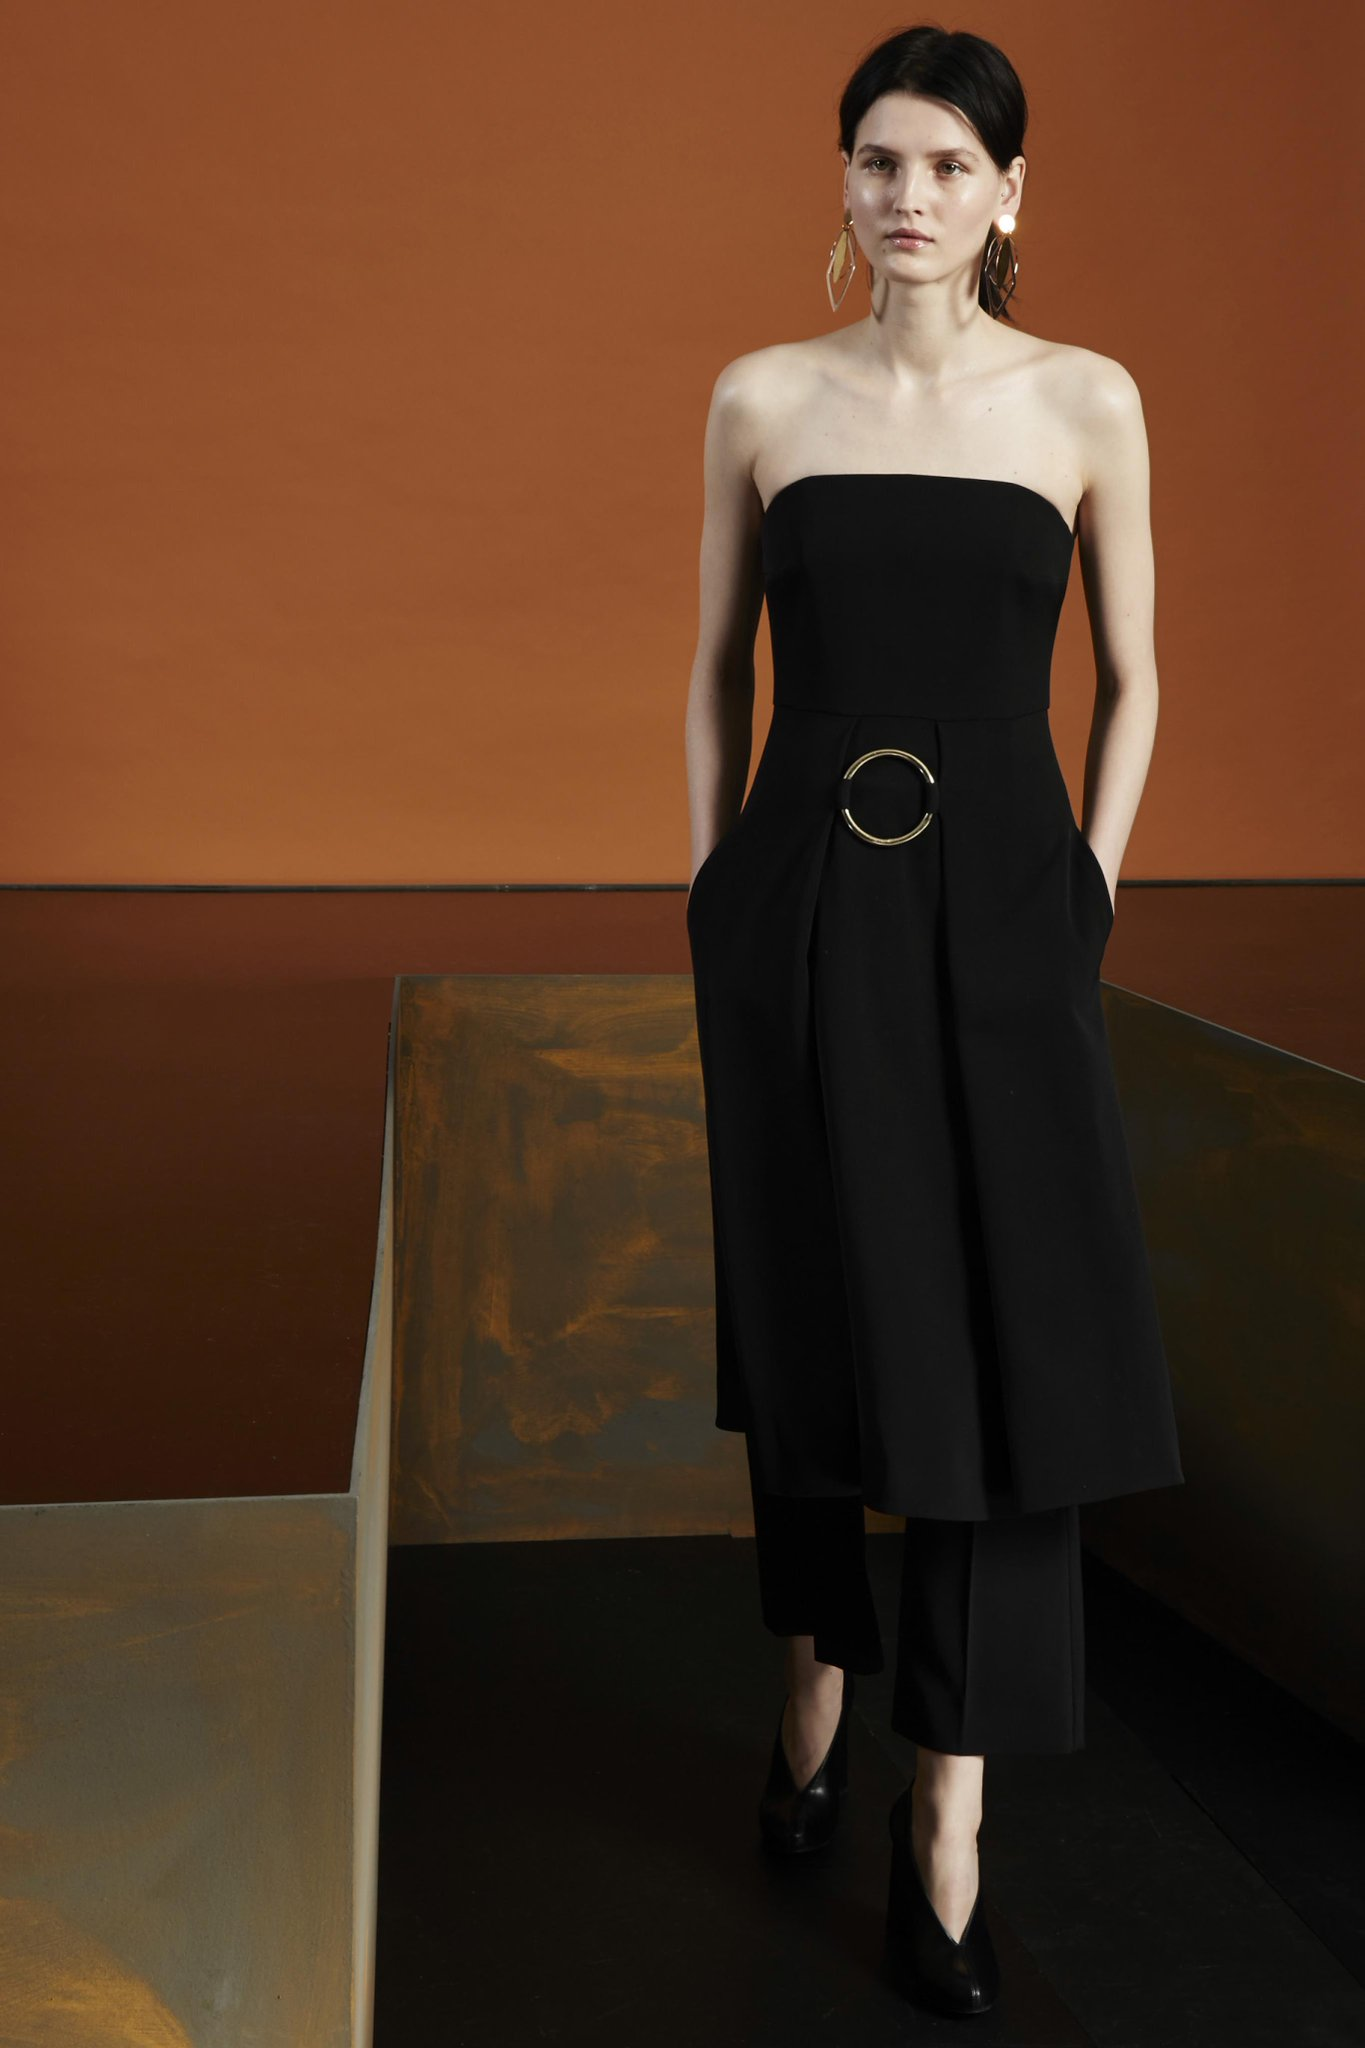 Keep it bold and simple with a sleeveless wool dress over tailored trousers.  #Autumn15 > http://t.co/KwDcC1tib3 http://t.co/0hByntzUNg